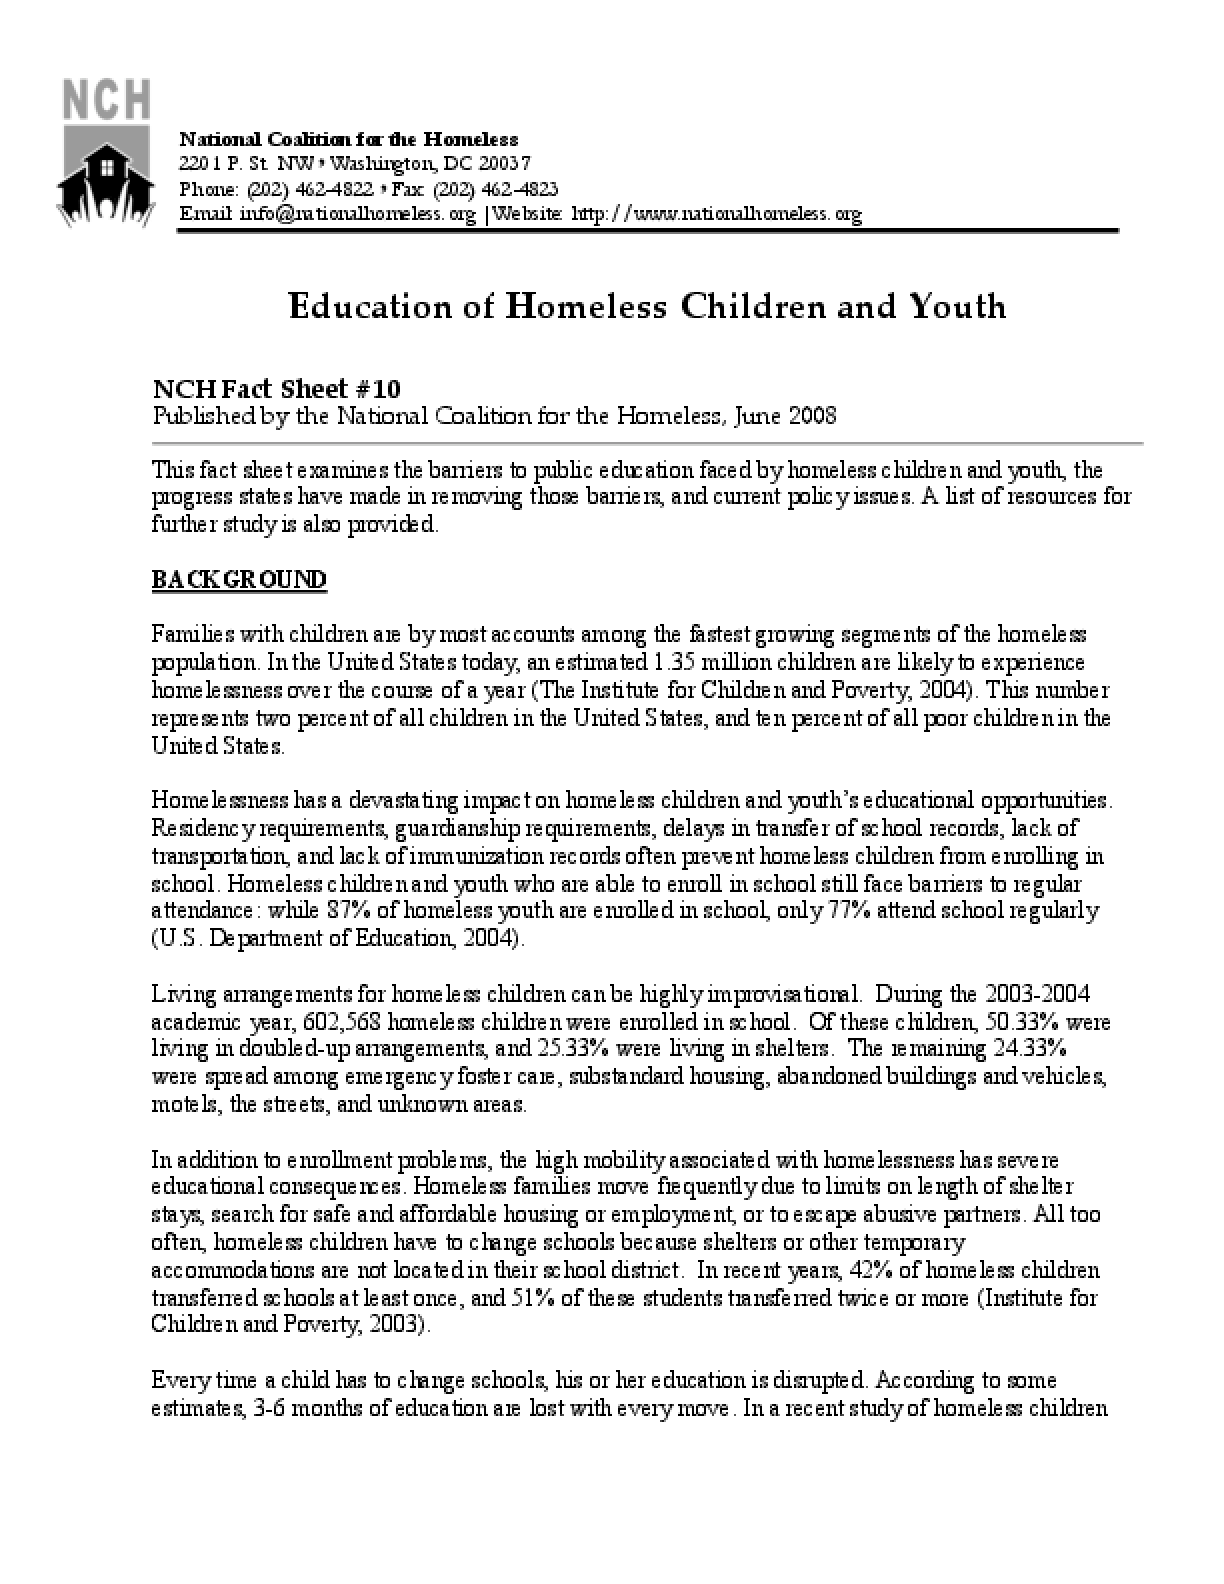 Education of Homeless Children and Youth Factsheet